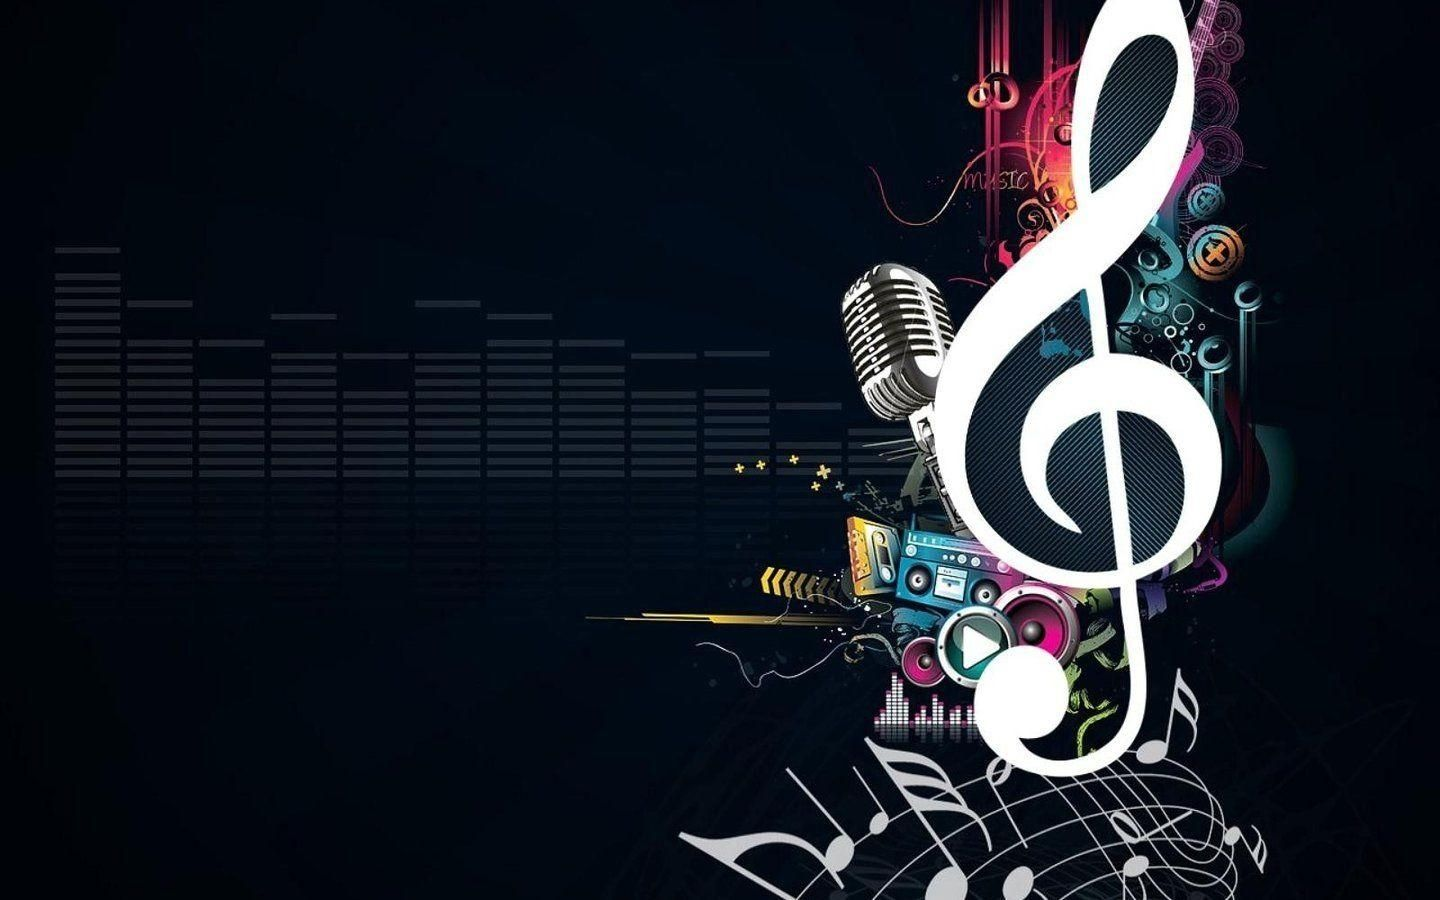 10 New Abstract Music Hd Wallpapers Full Hd 1080p For Pc Desktop